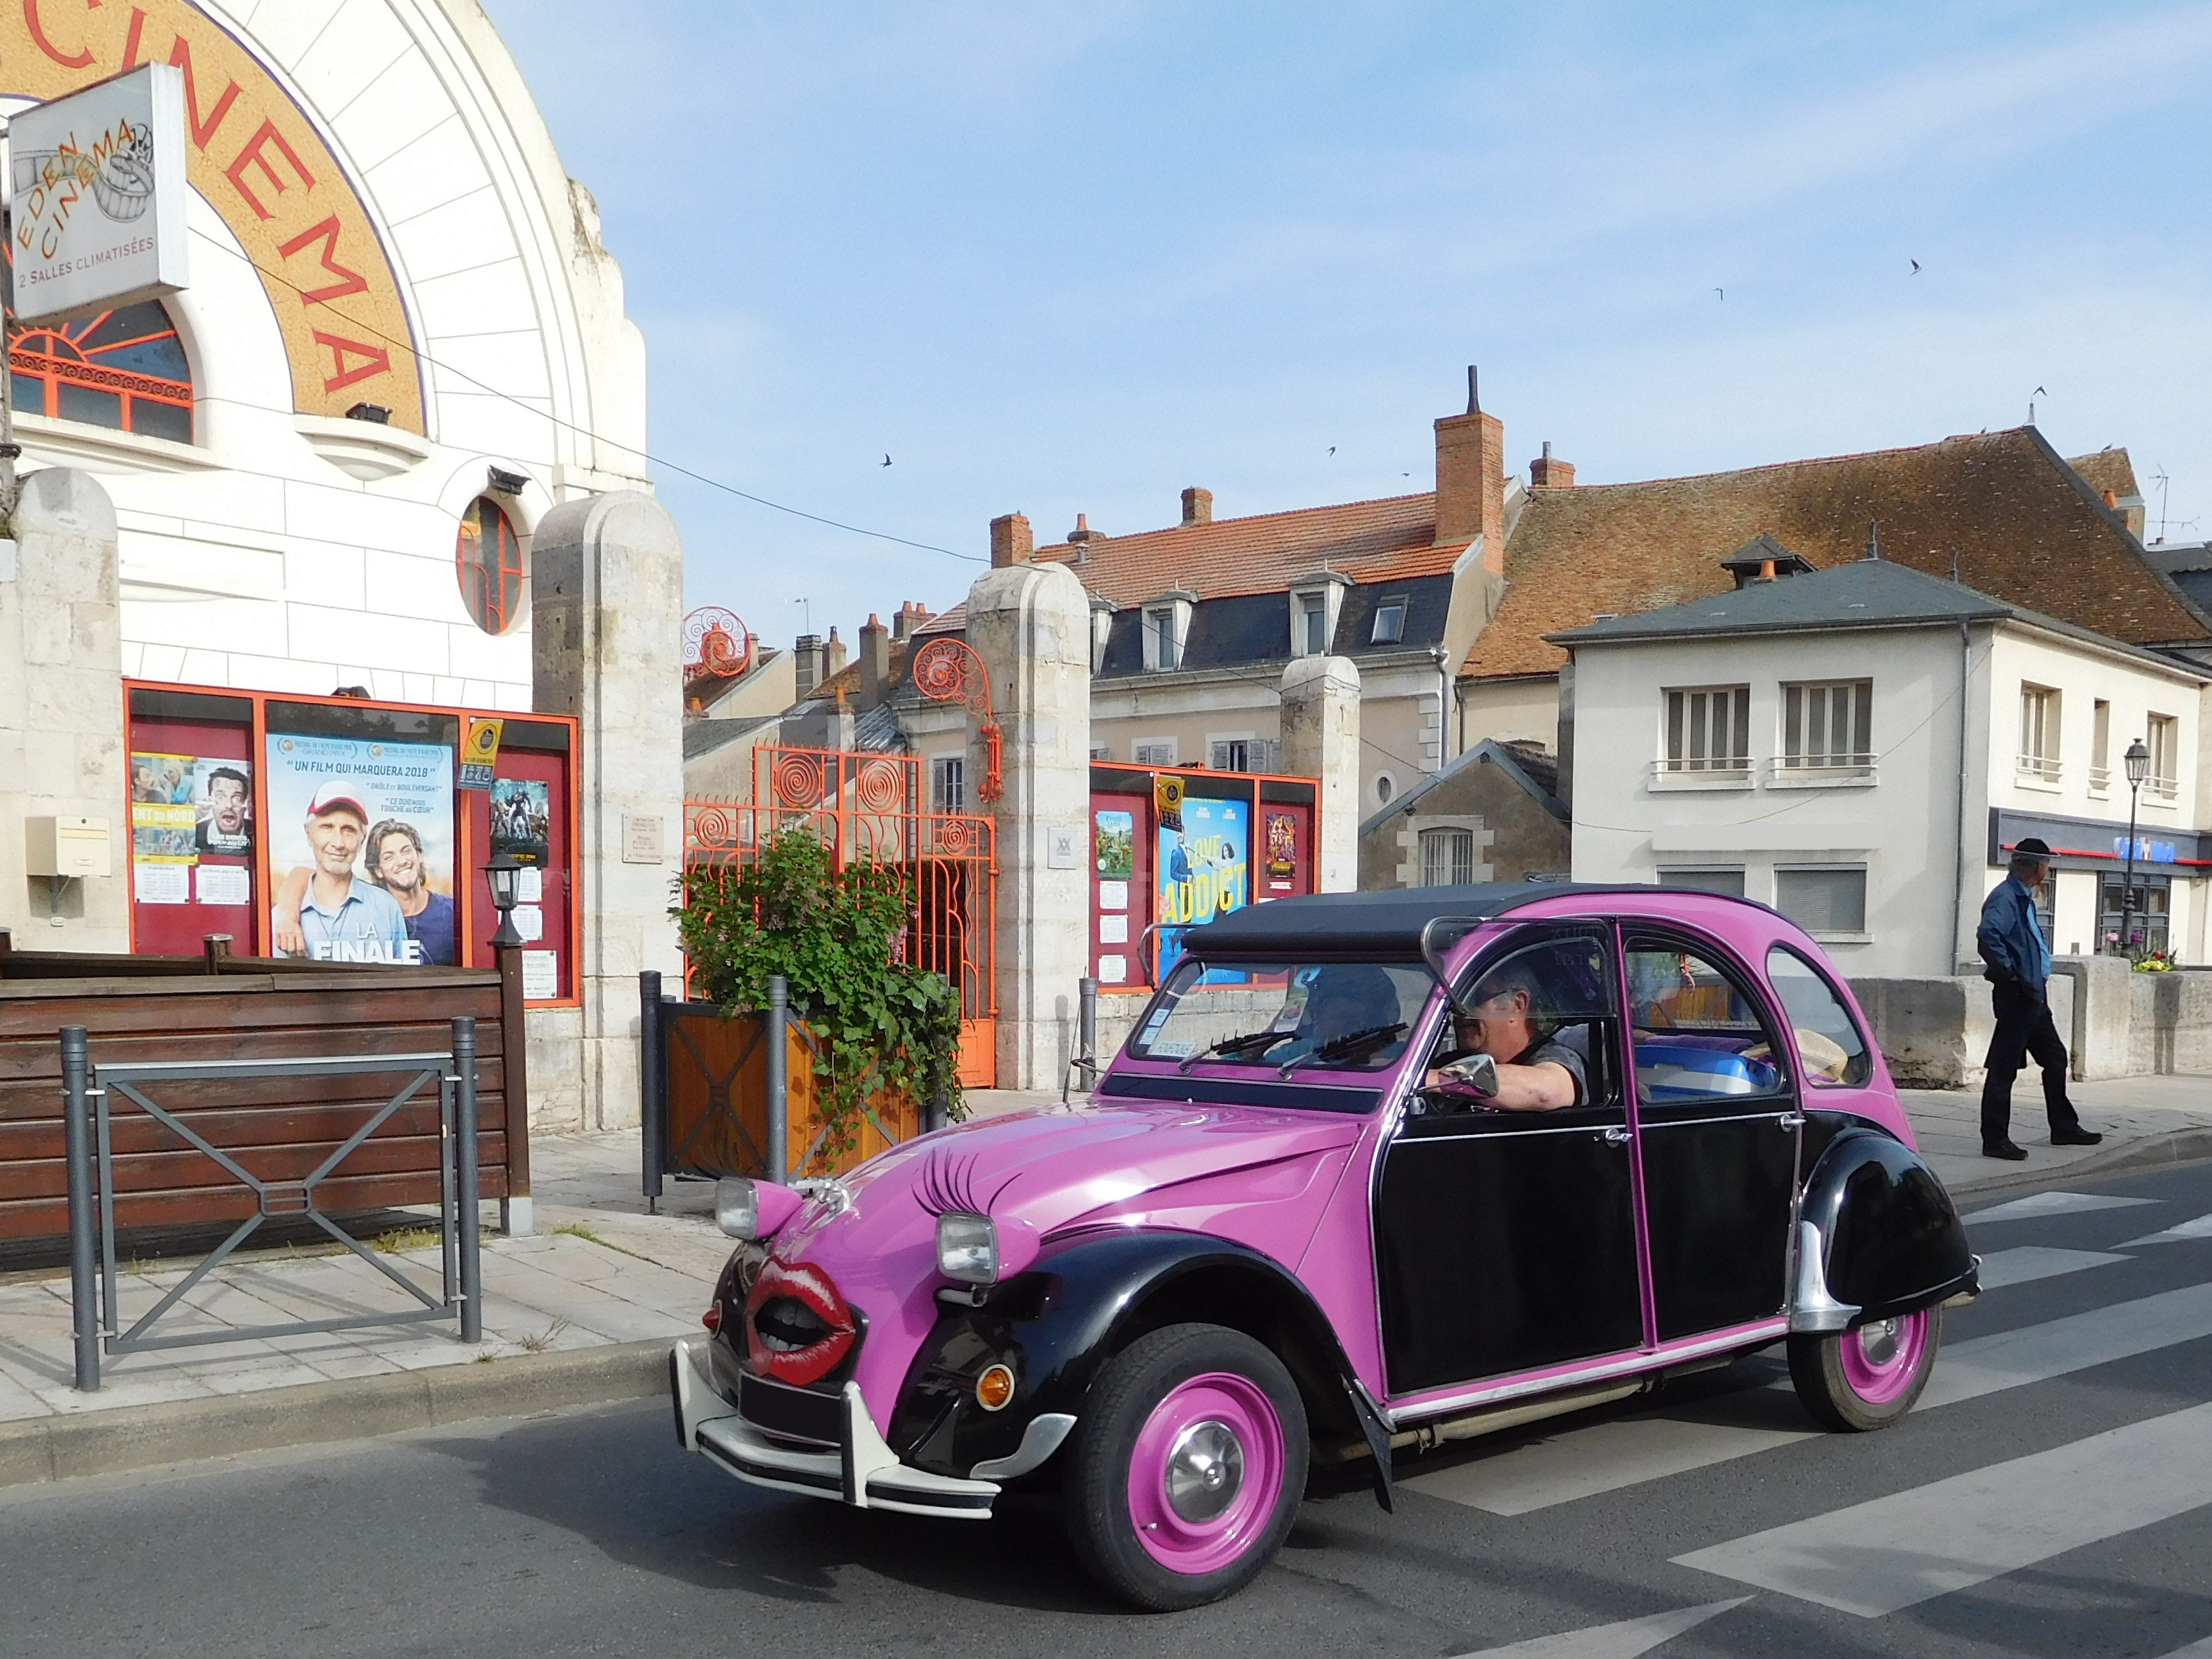 File:Citroën 2CV, mouth painted jpg - Wikimedia Commons